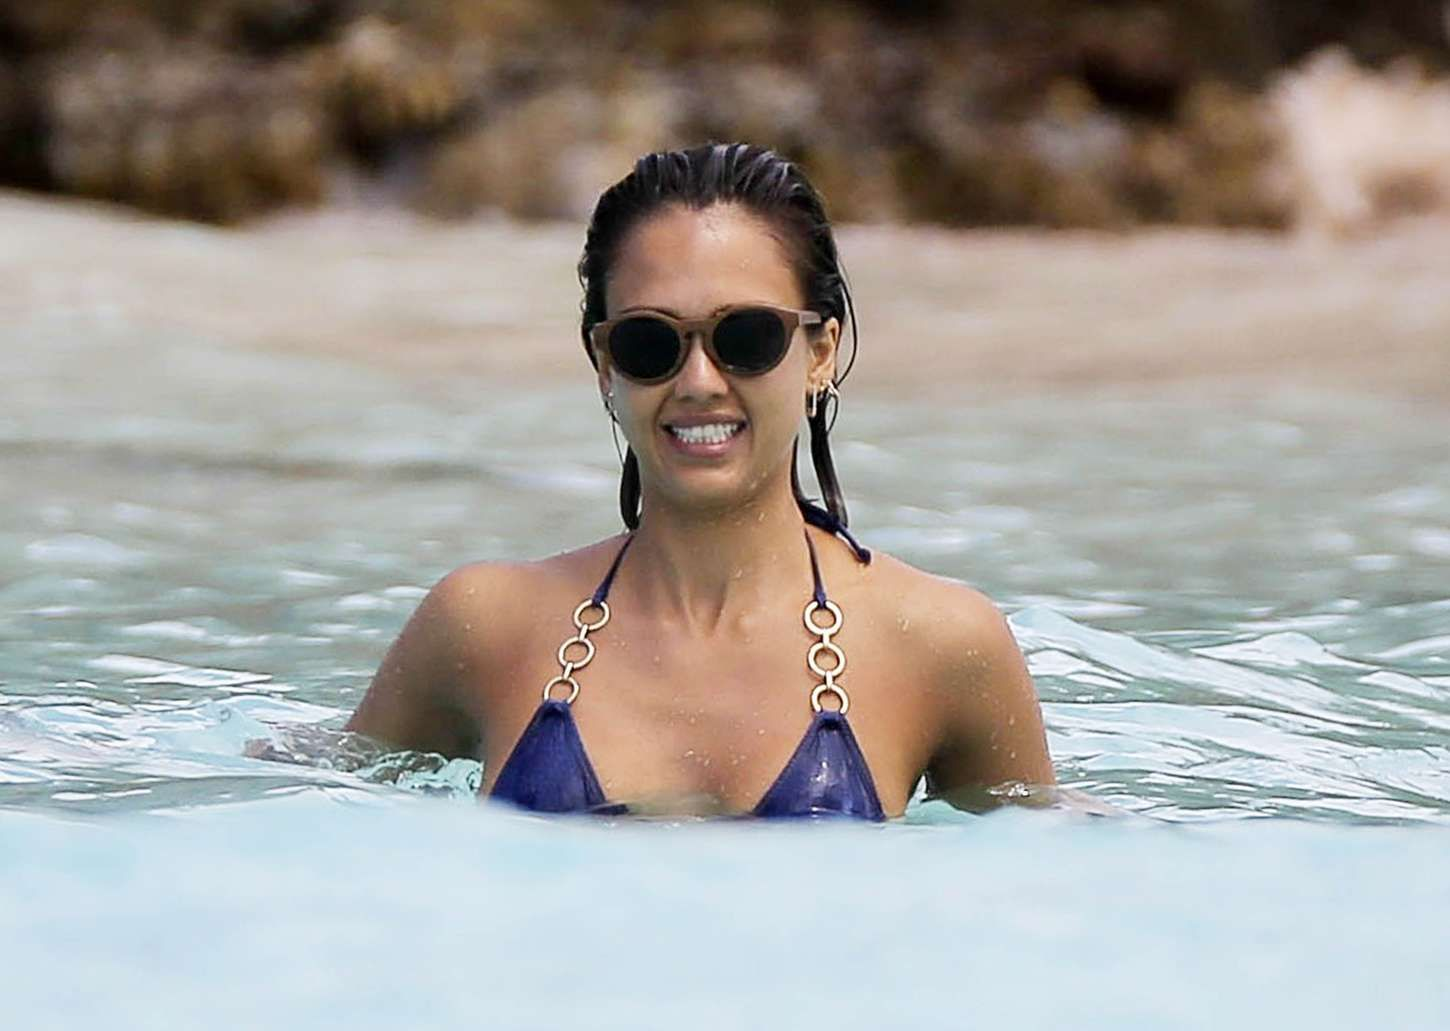 jessica-alba-bikini-photos-gallery